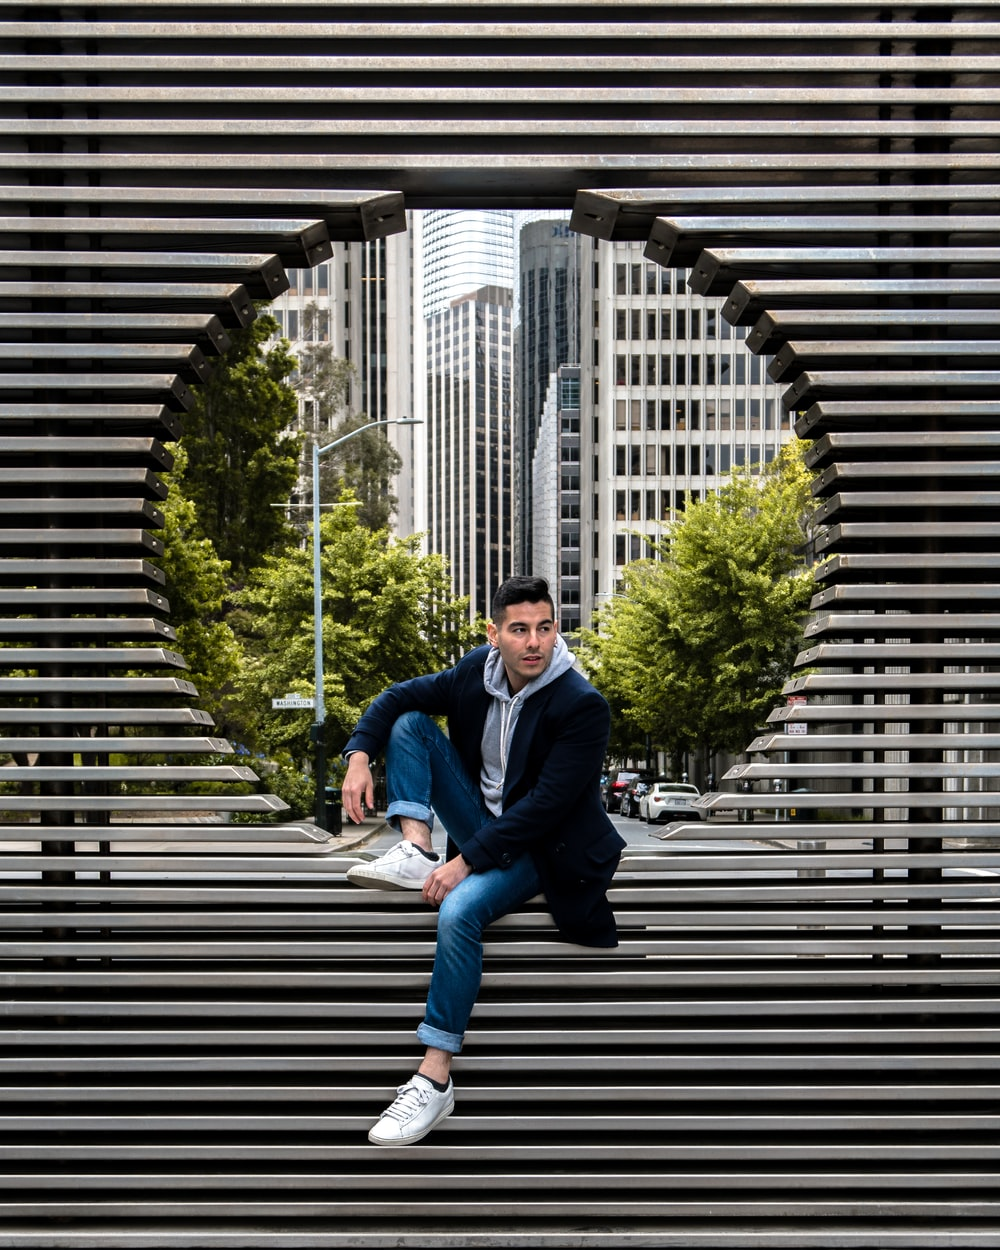 man sitting on structure